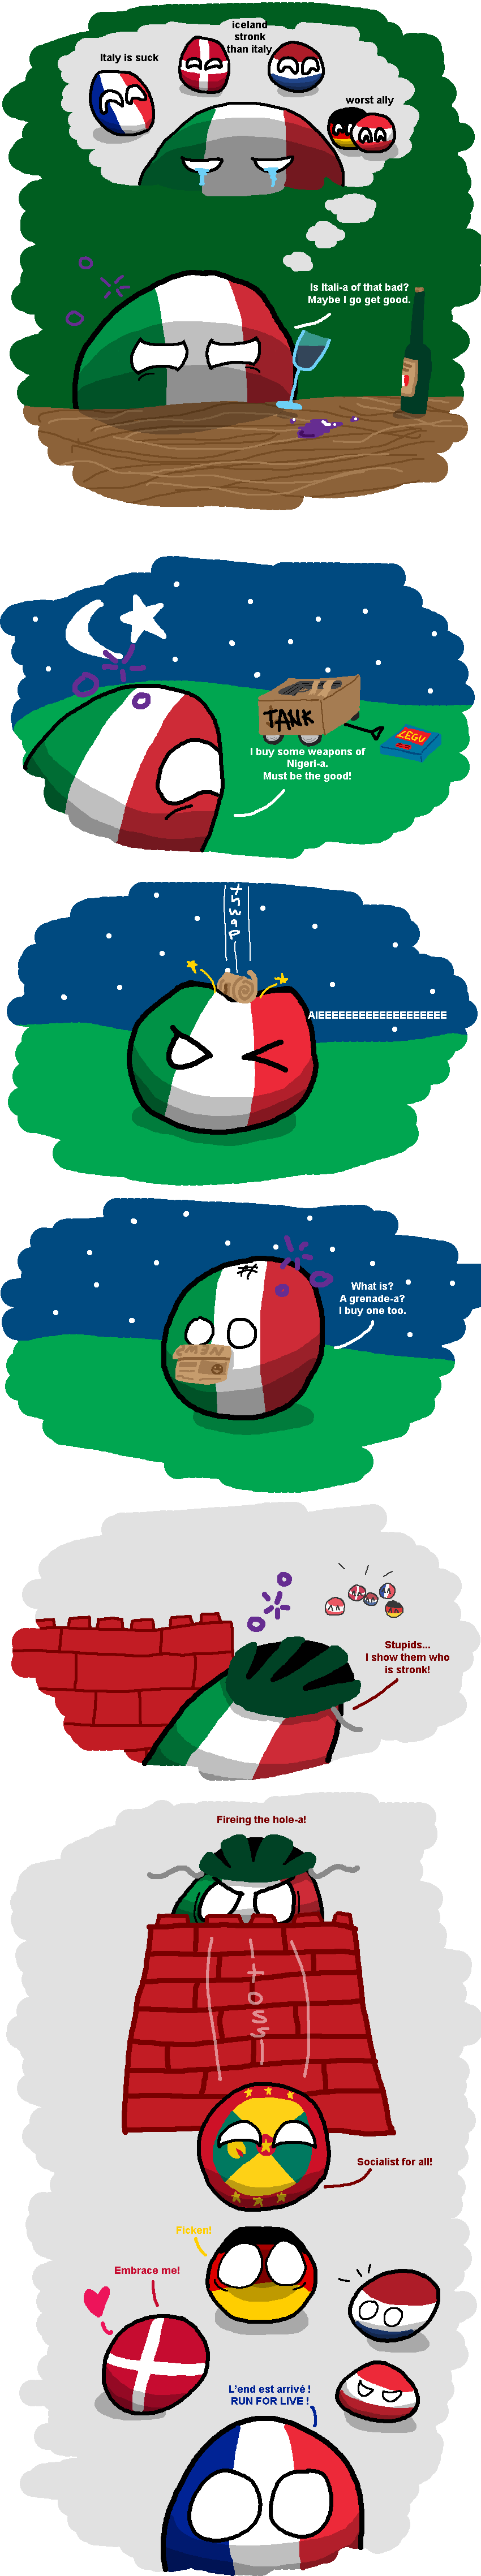 Italian military jokes know your meme stronk than italy italy is suck worst ally ls italia of that bad maybe i publicscrutiny Choice Image